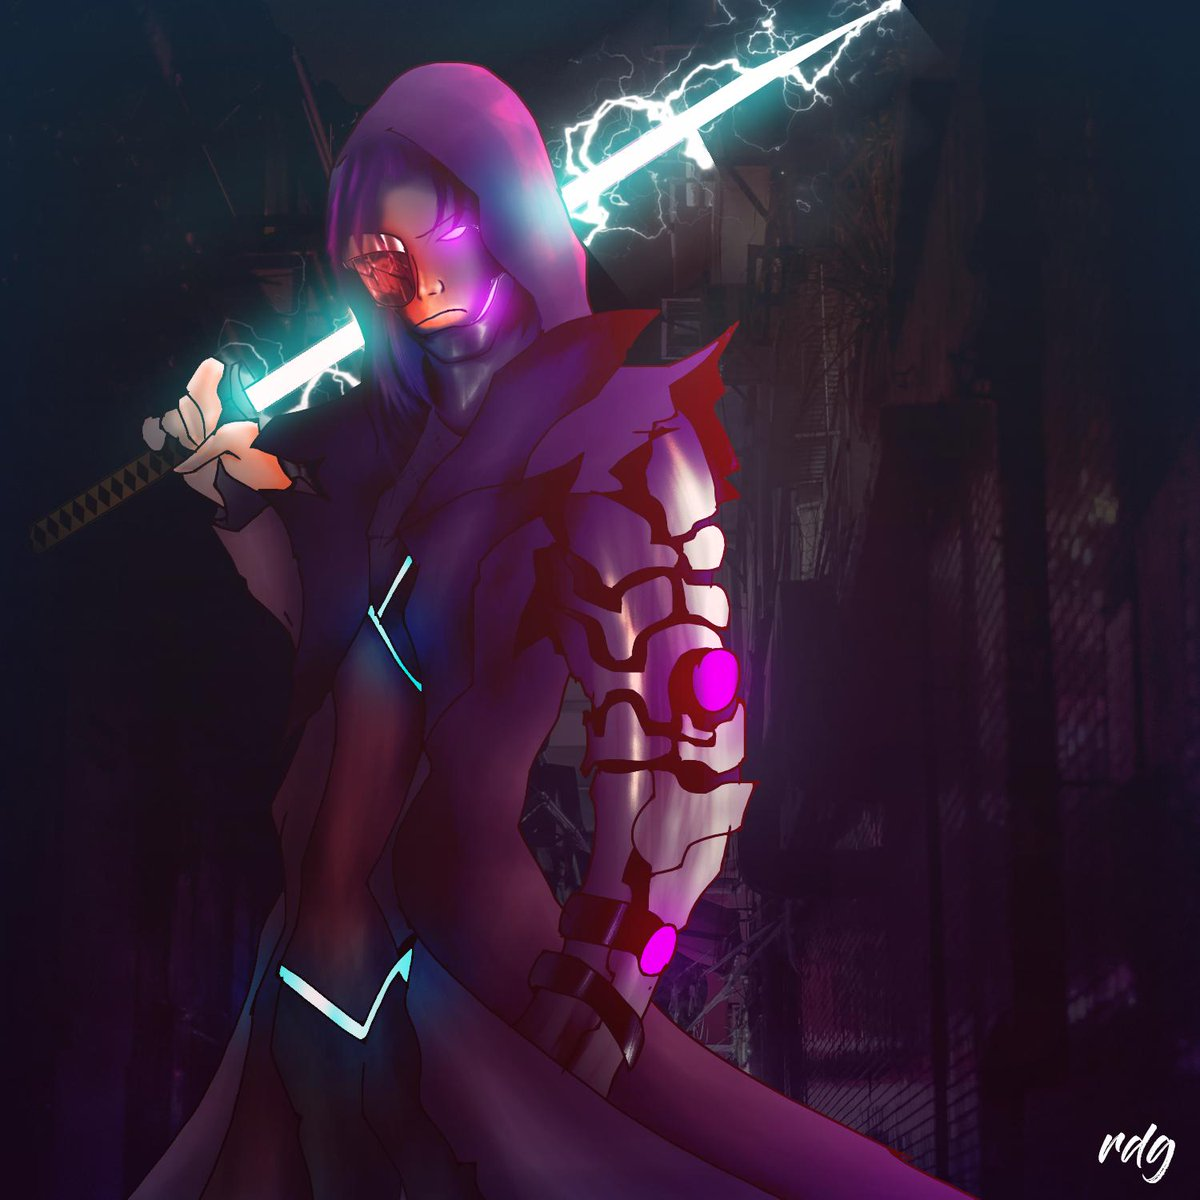 Cyberpunk Zhin concept  This turned into a logo for a streamer I met and worked a commission for. Thought of transforming it into a Zhin skin coz why not.  @TyrantZhin @HiRezRomanova @Pixiekittie_ @ThunderBrush @PaladinsGame